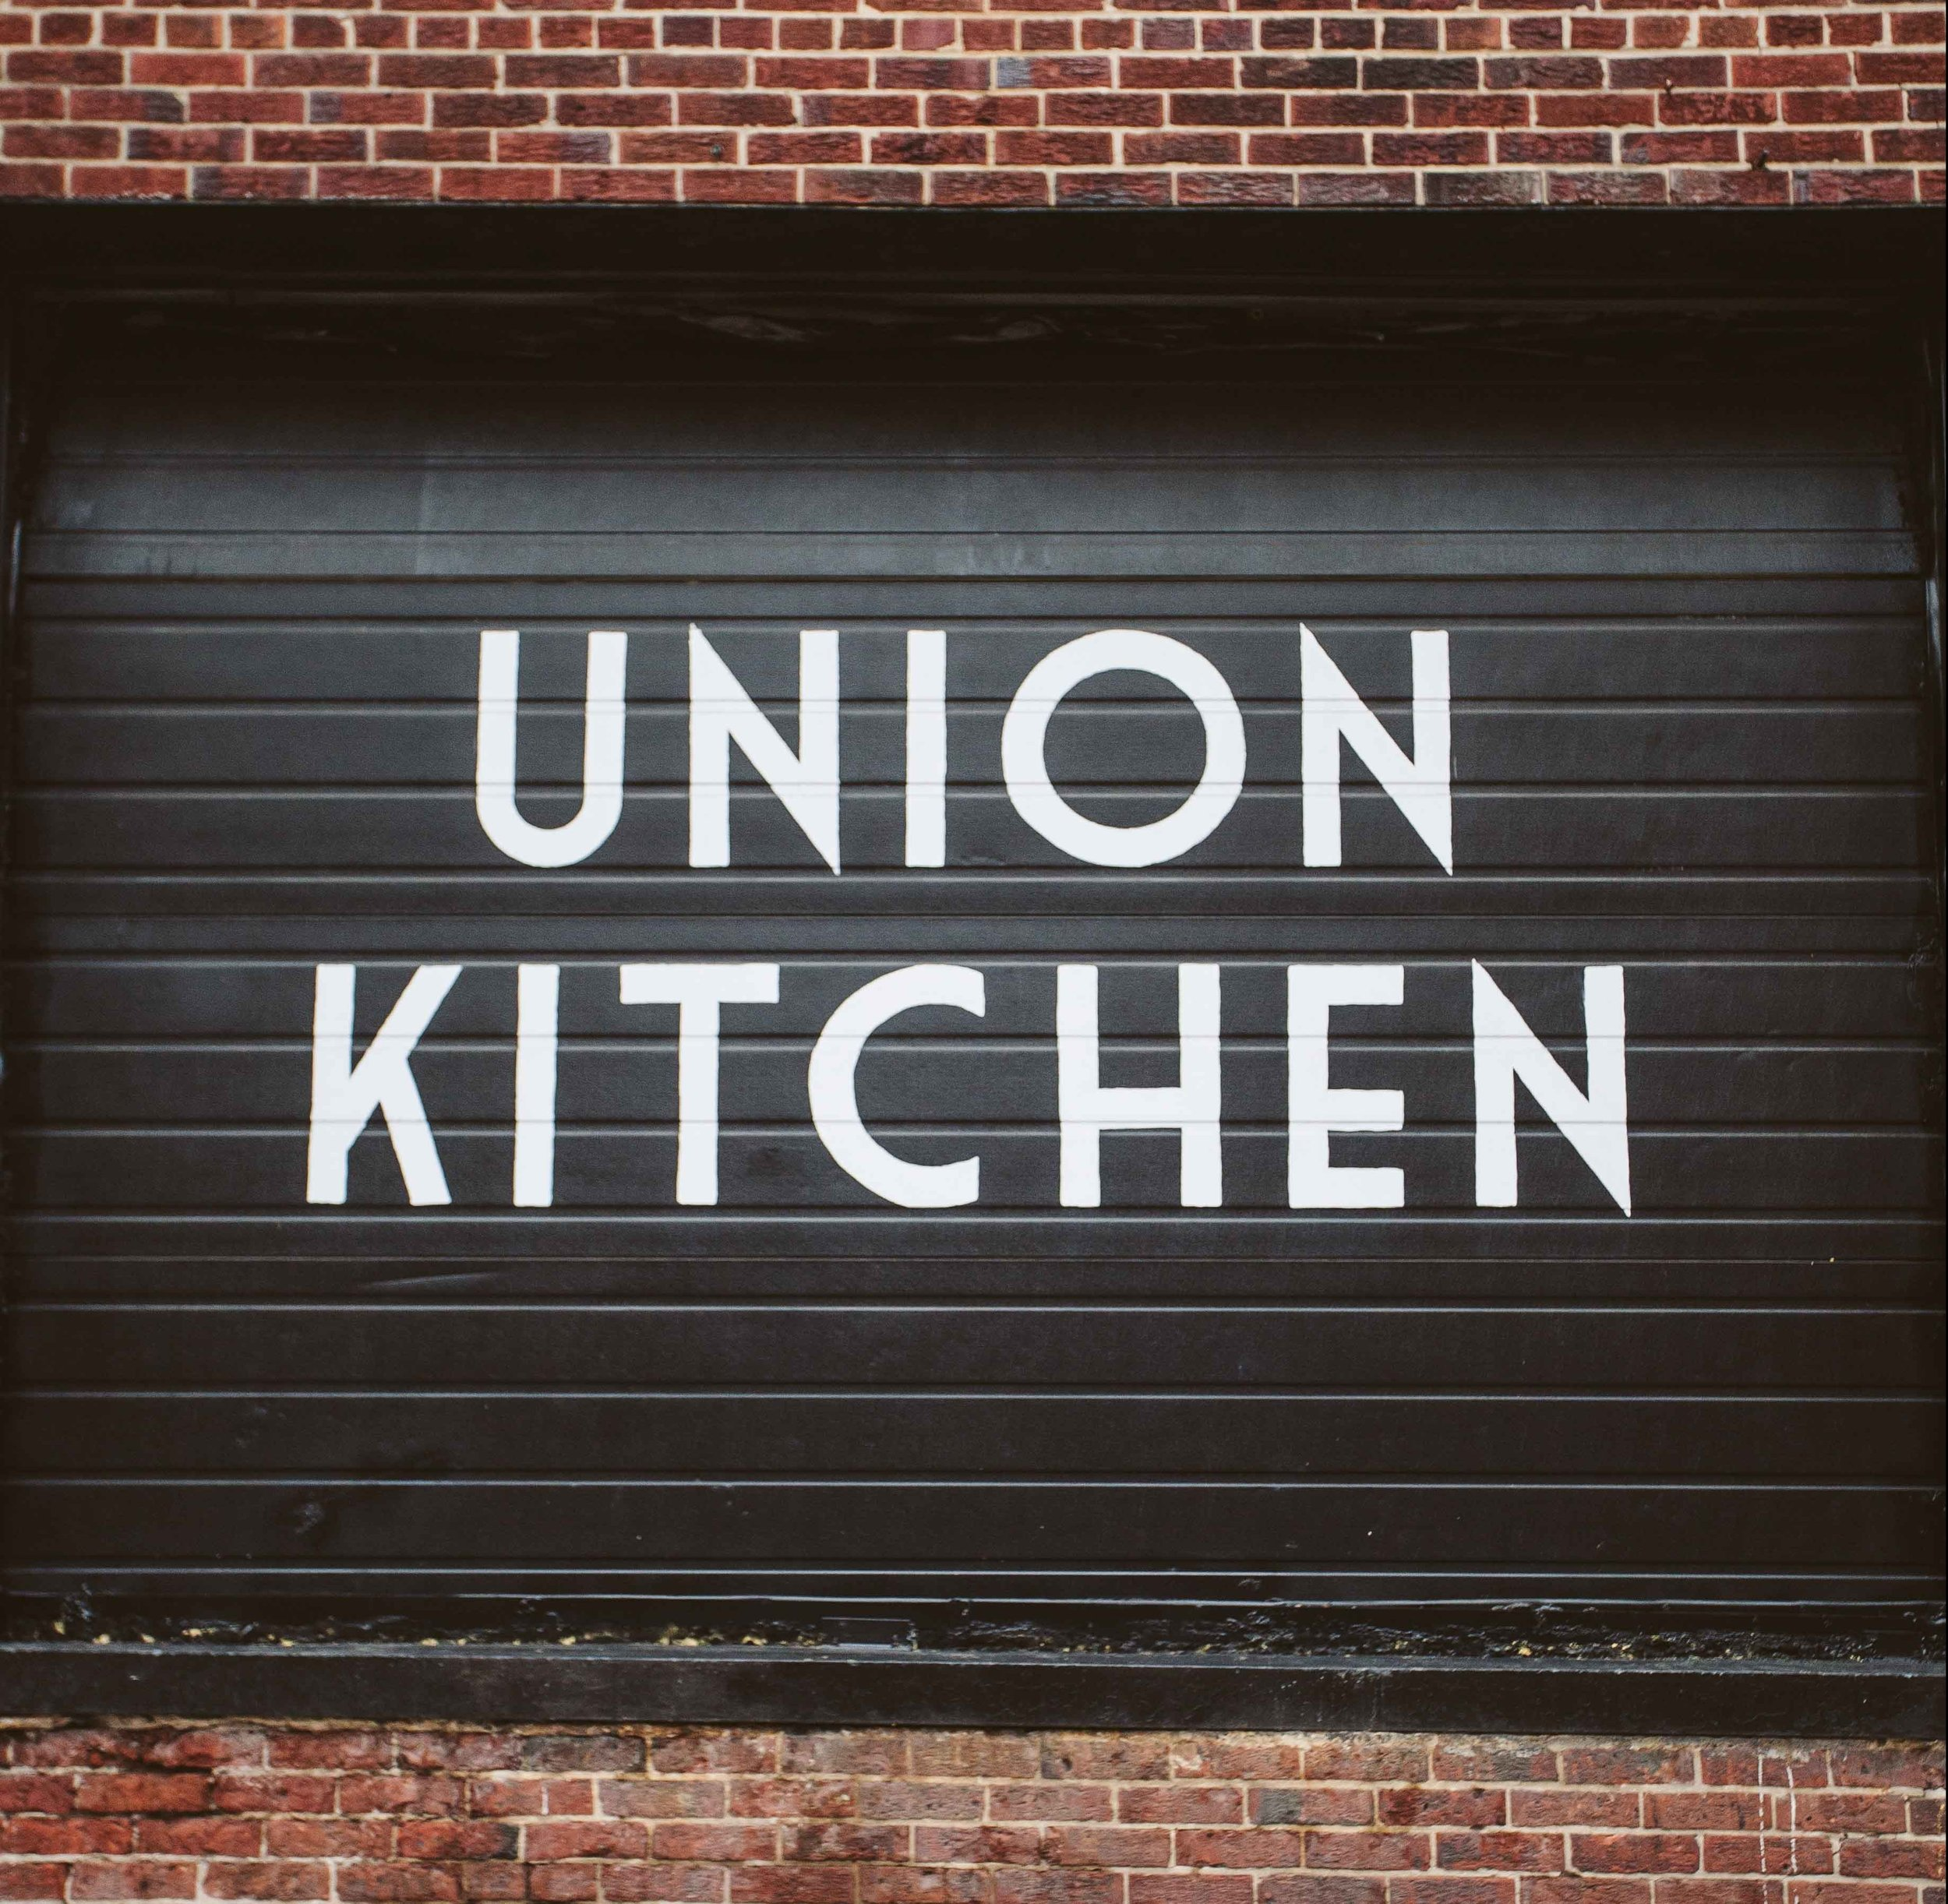 Union Kitchen.jpg